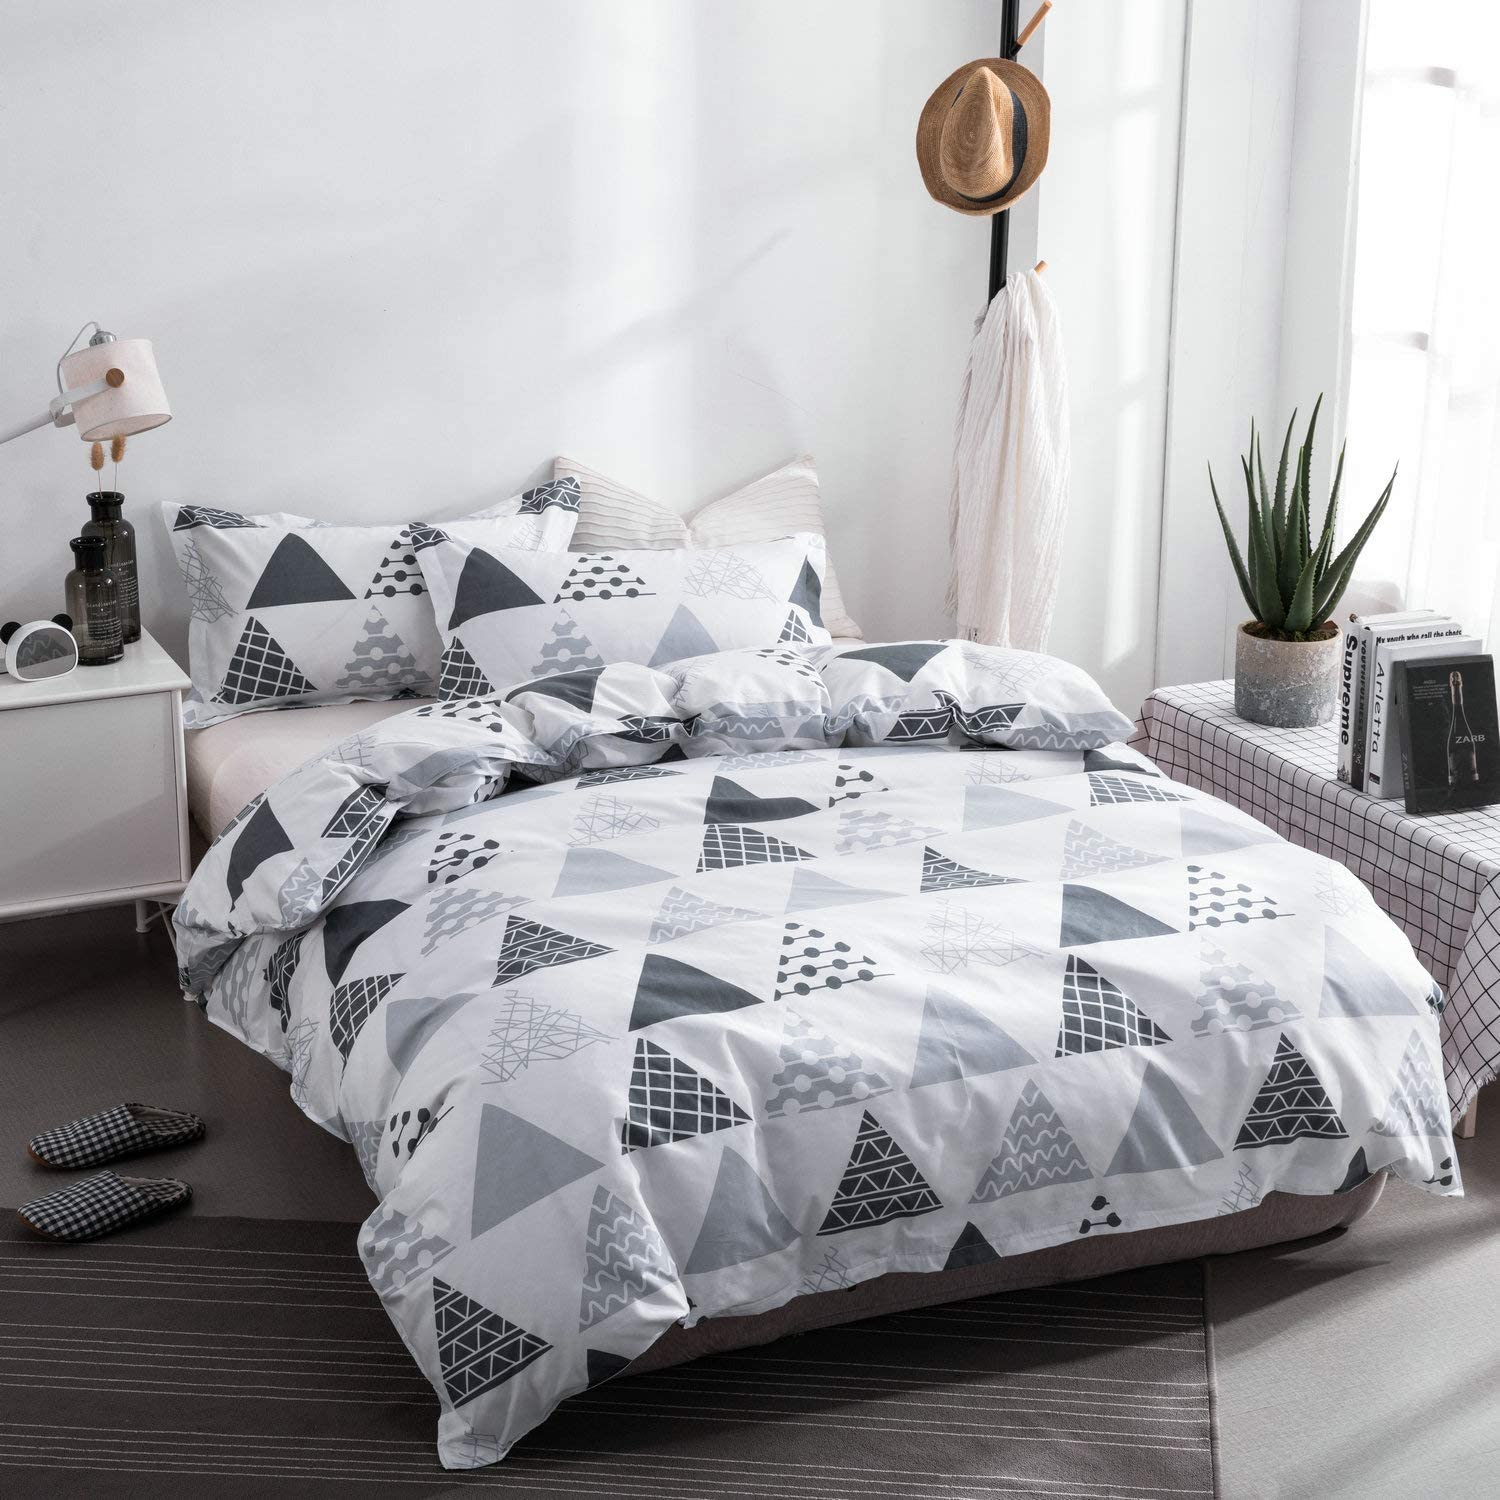 Soft Microfiber Teen Bedding for Kid Girl Bedroom Triangle, White, Twin 66x86 Without Quilt ORIHOME Twin Bedding Set Triangle Print White Color 3 Piece Bedding Sets One Duvet Cover Two Pillowcase